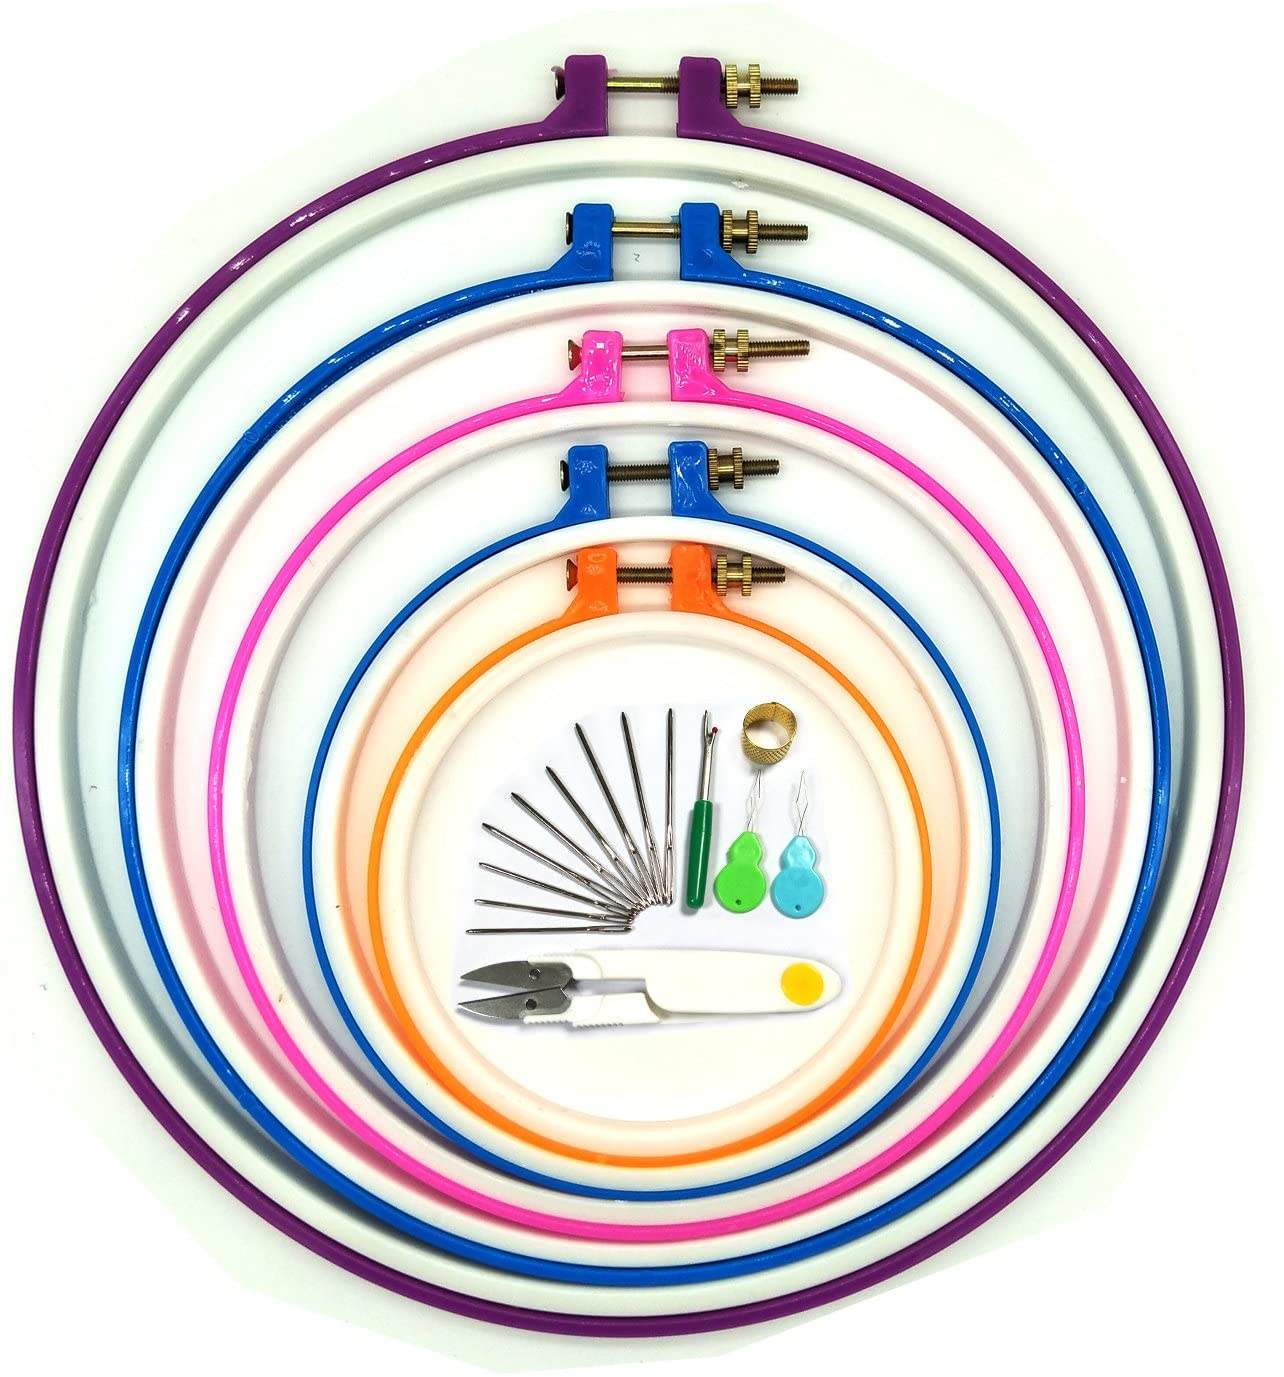 Embroidery Hoops, Wartoon 5 Pieces Cross Stitch Hoop Ring Embroidery Circle Set 5 inch to 11 inch (Multicolor)